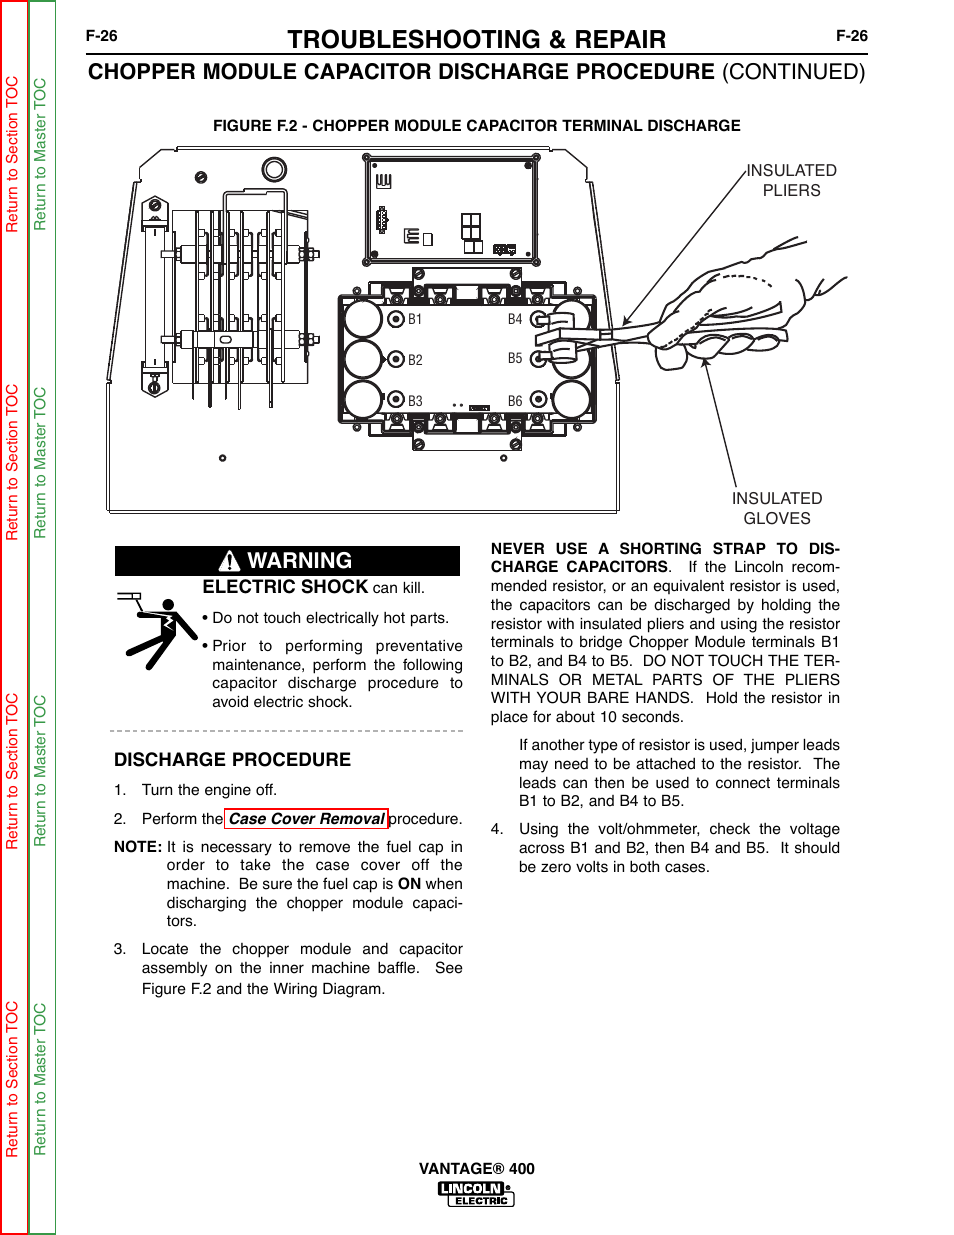 Troubleshooting & repair, Warning   Lincoln Electric VANTAGE 400 User  Manual   Page 74 / 166Manuals Directory